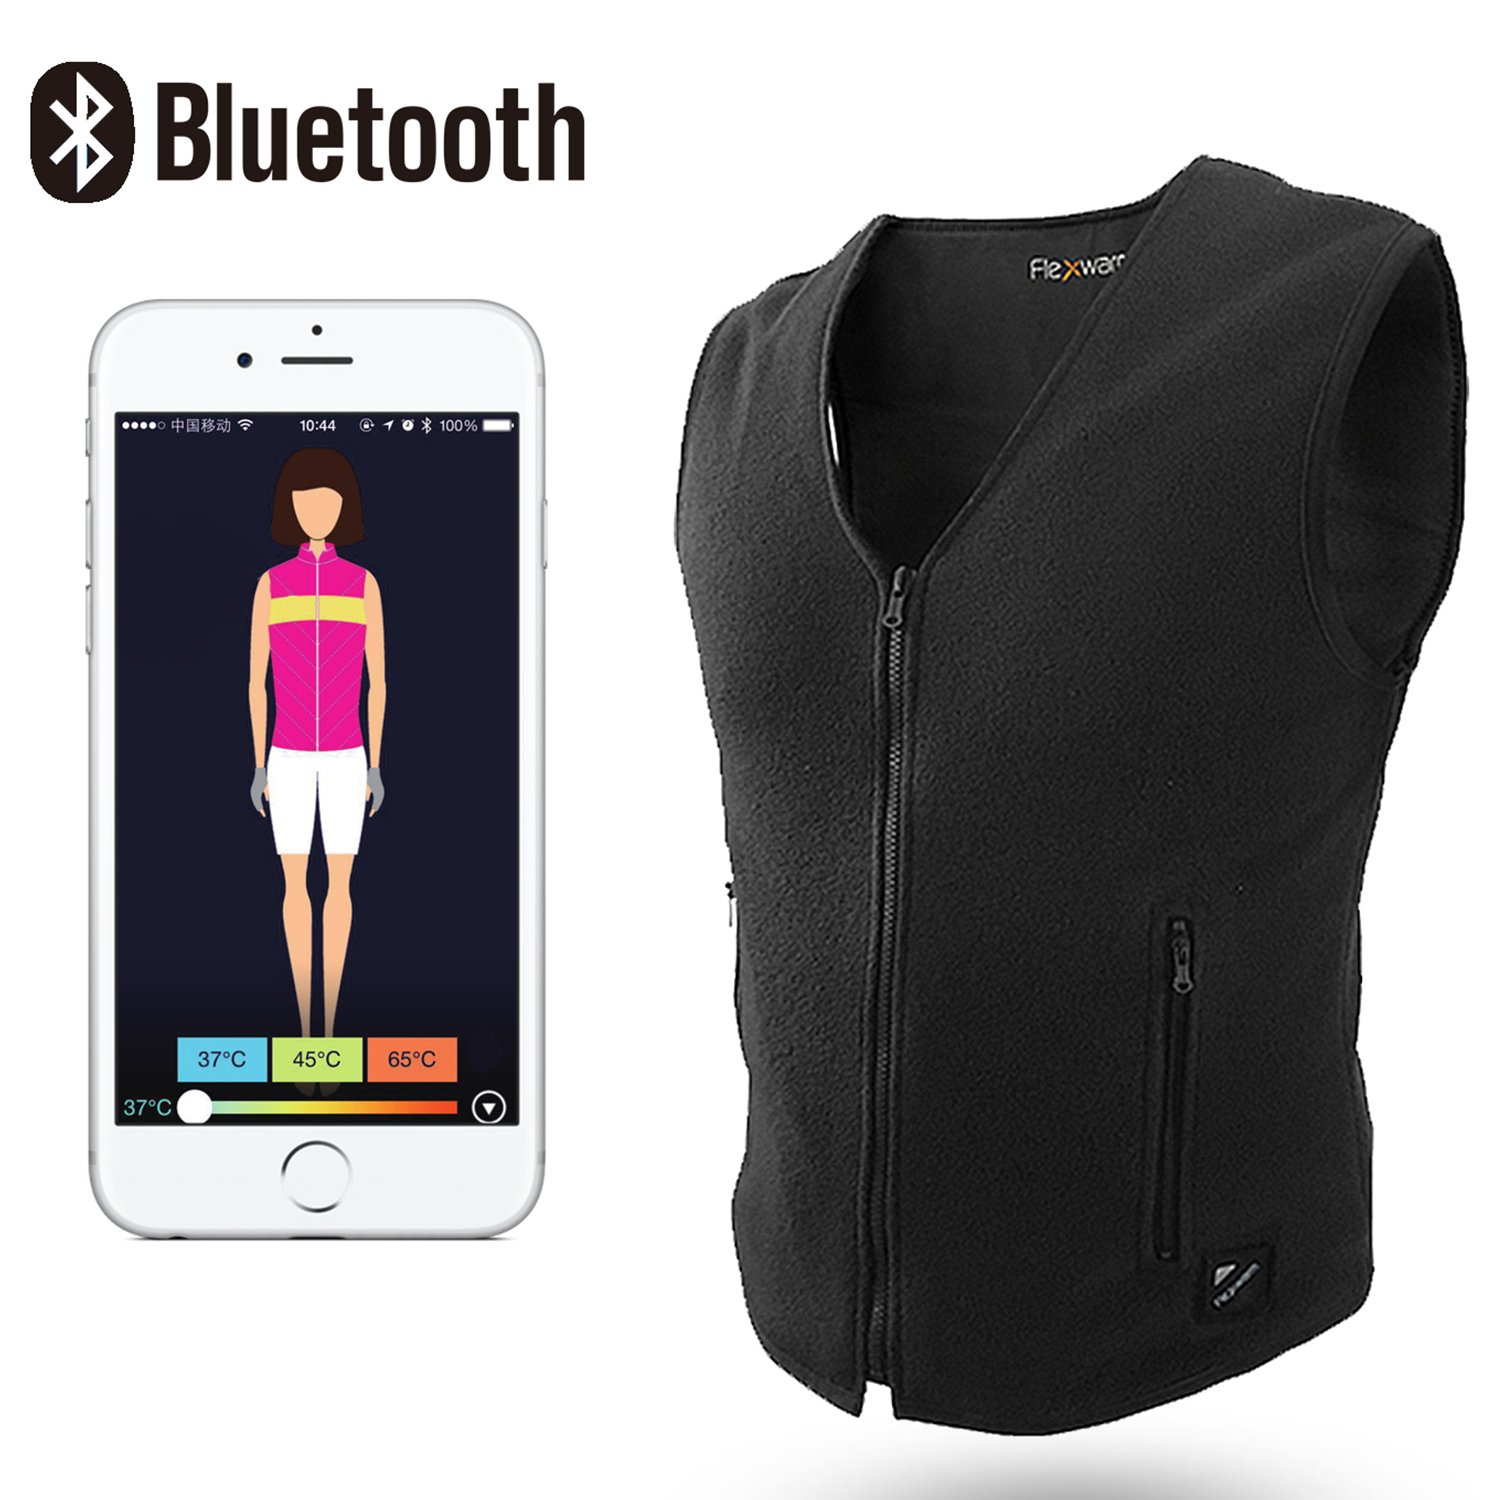 Beautprincess Men's Therapy Far Infrared Heating Vest Electric Warming Clothes Waterproof with Smartphone Bluetooth App Control X-Large, Battery Not Included